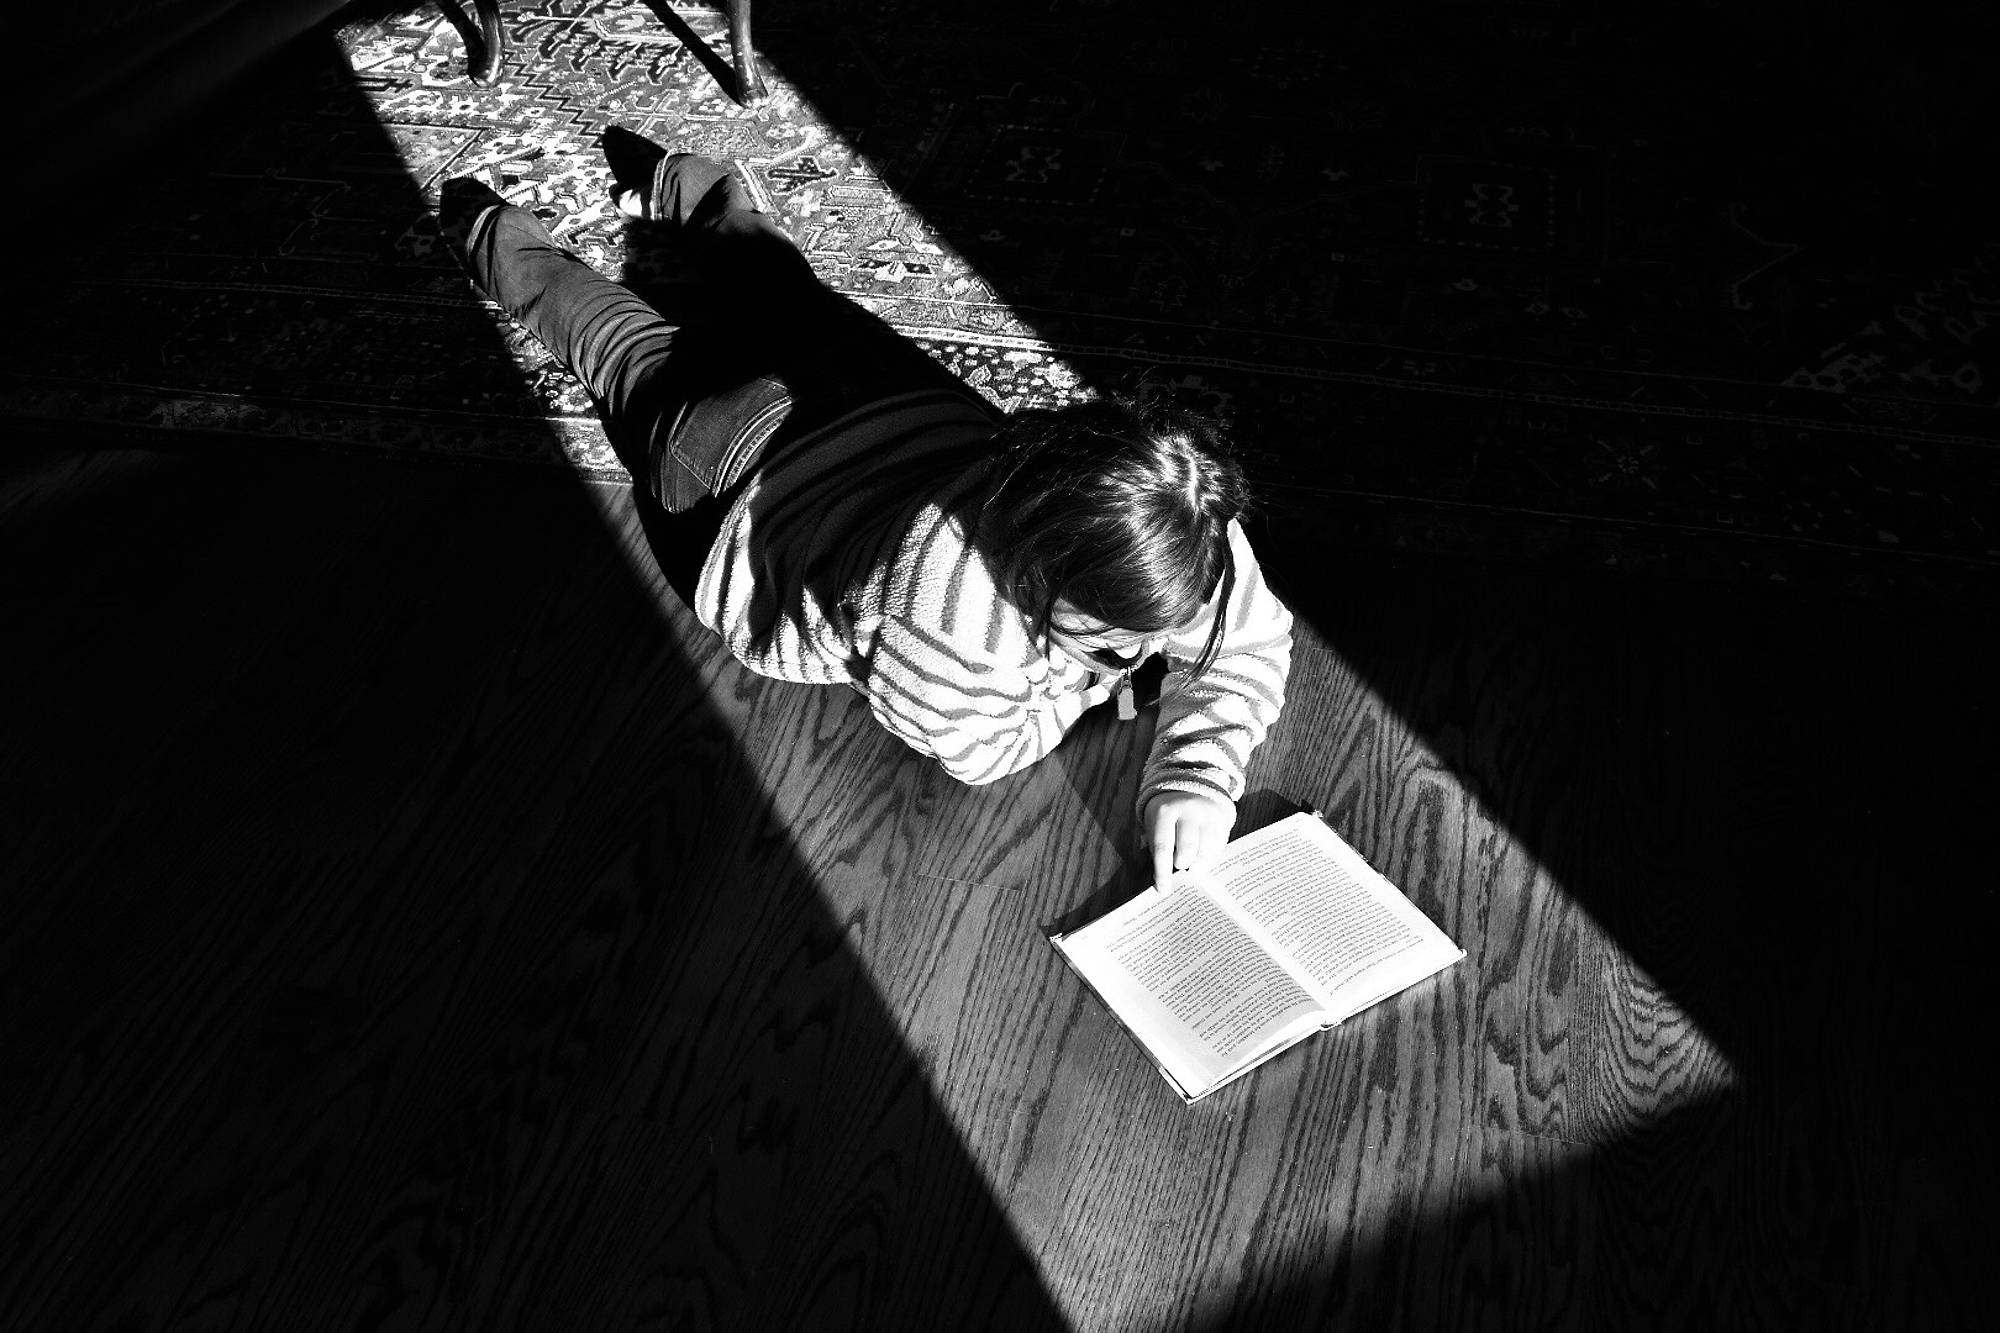 This is my sister, reading in the winter sun's light streaming through the window.